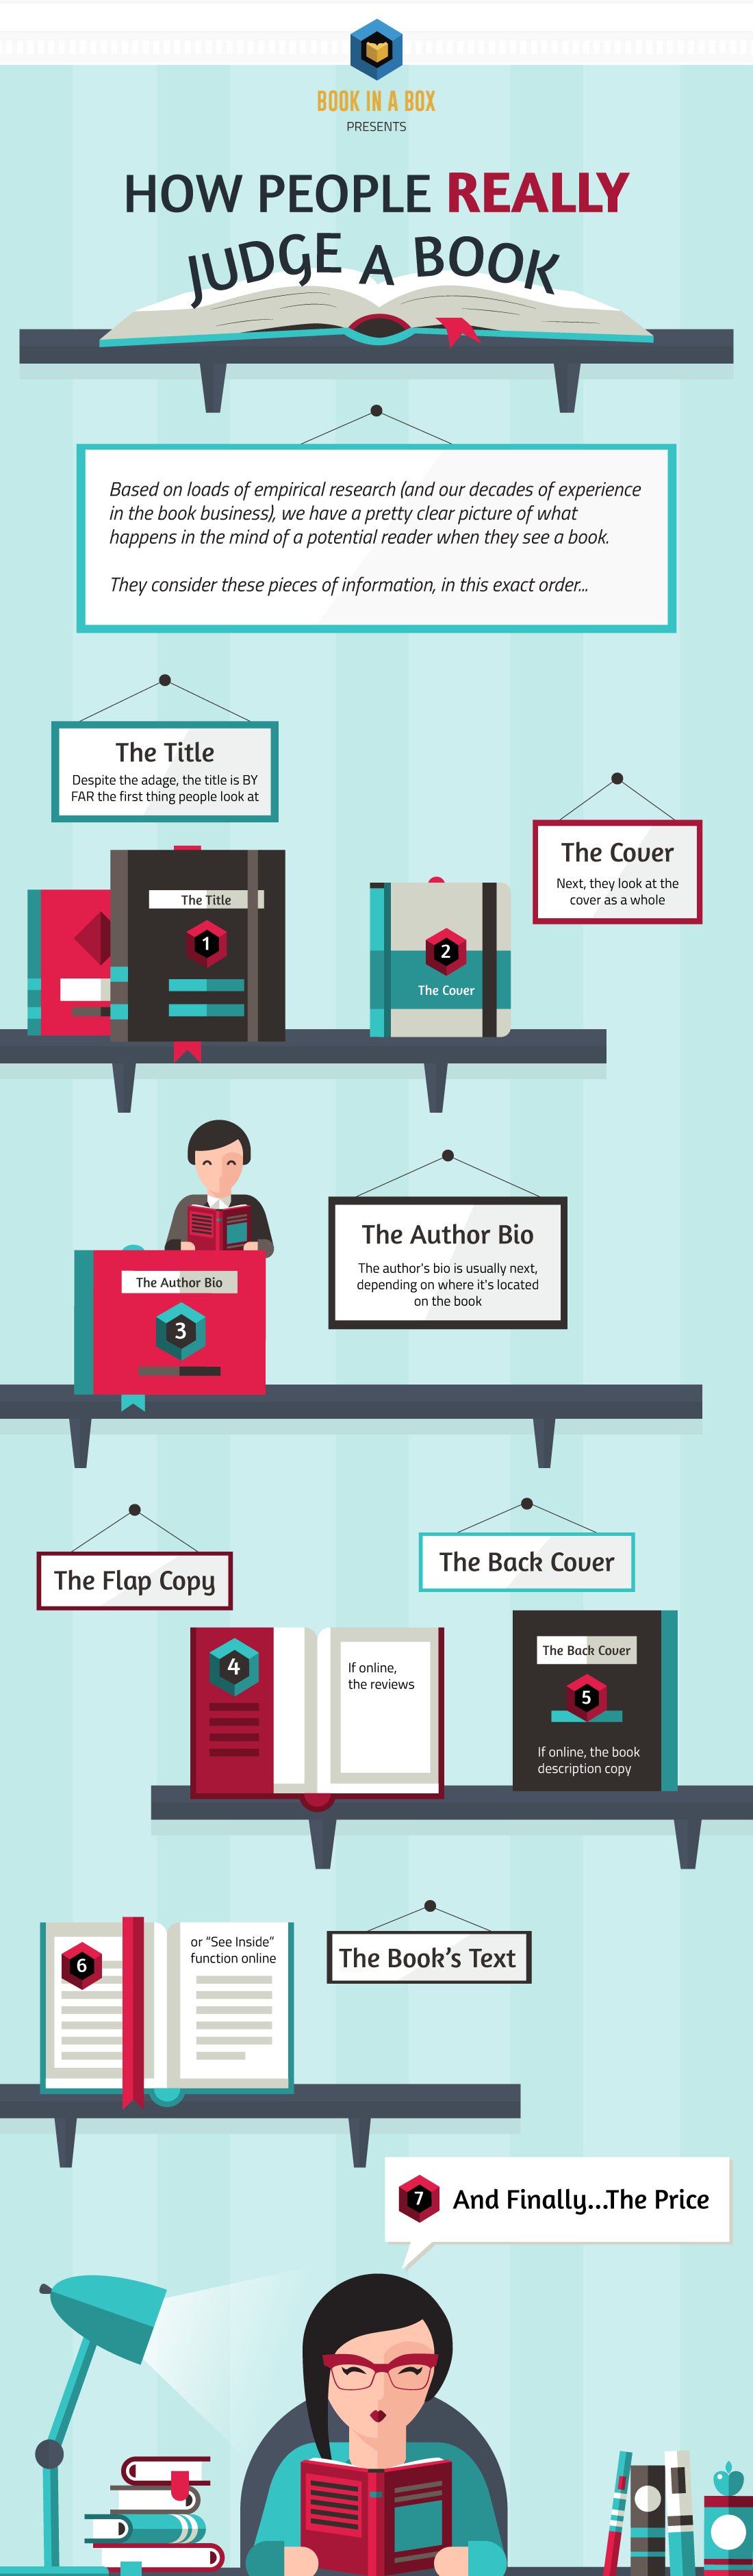 How People Really Judge a Book #Infographic